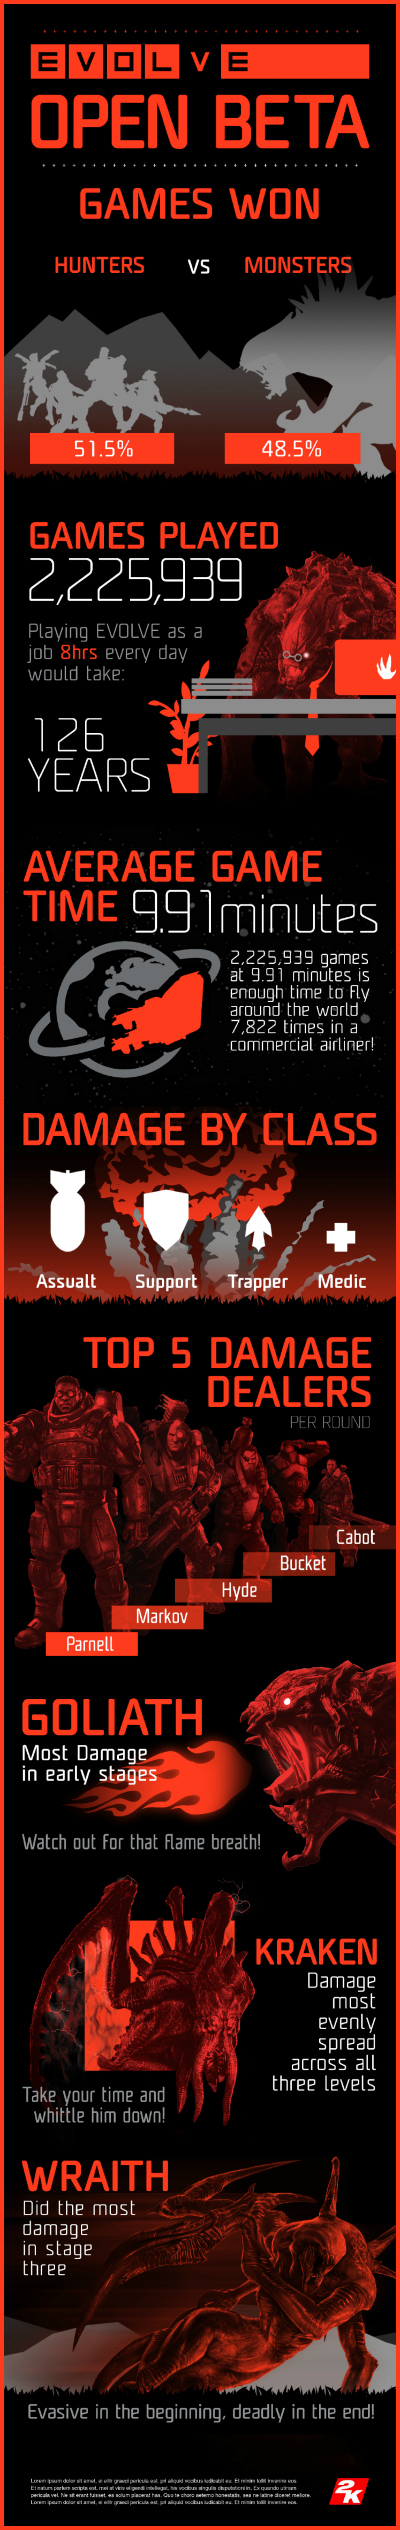 evolve_beta_infographic